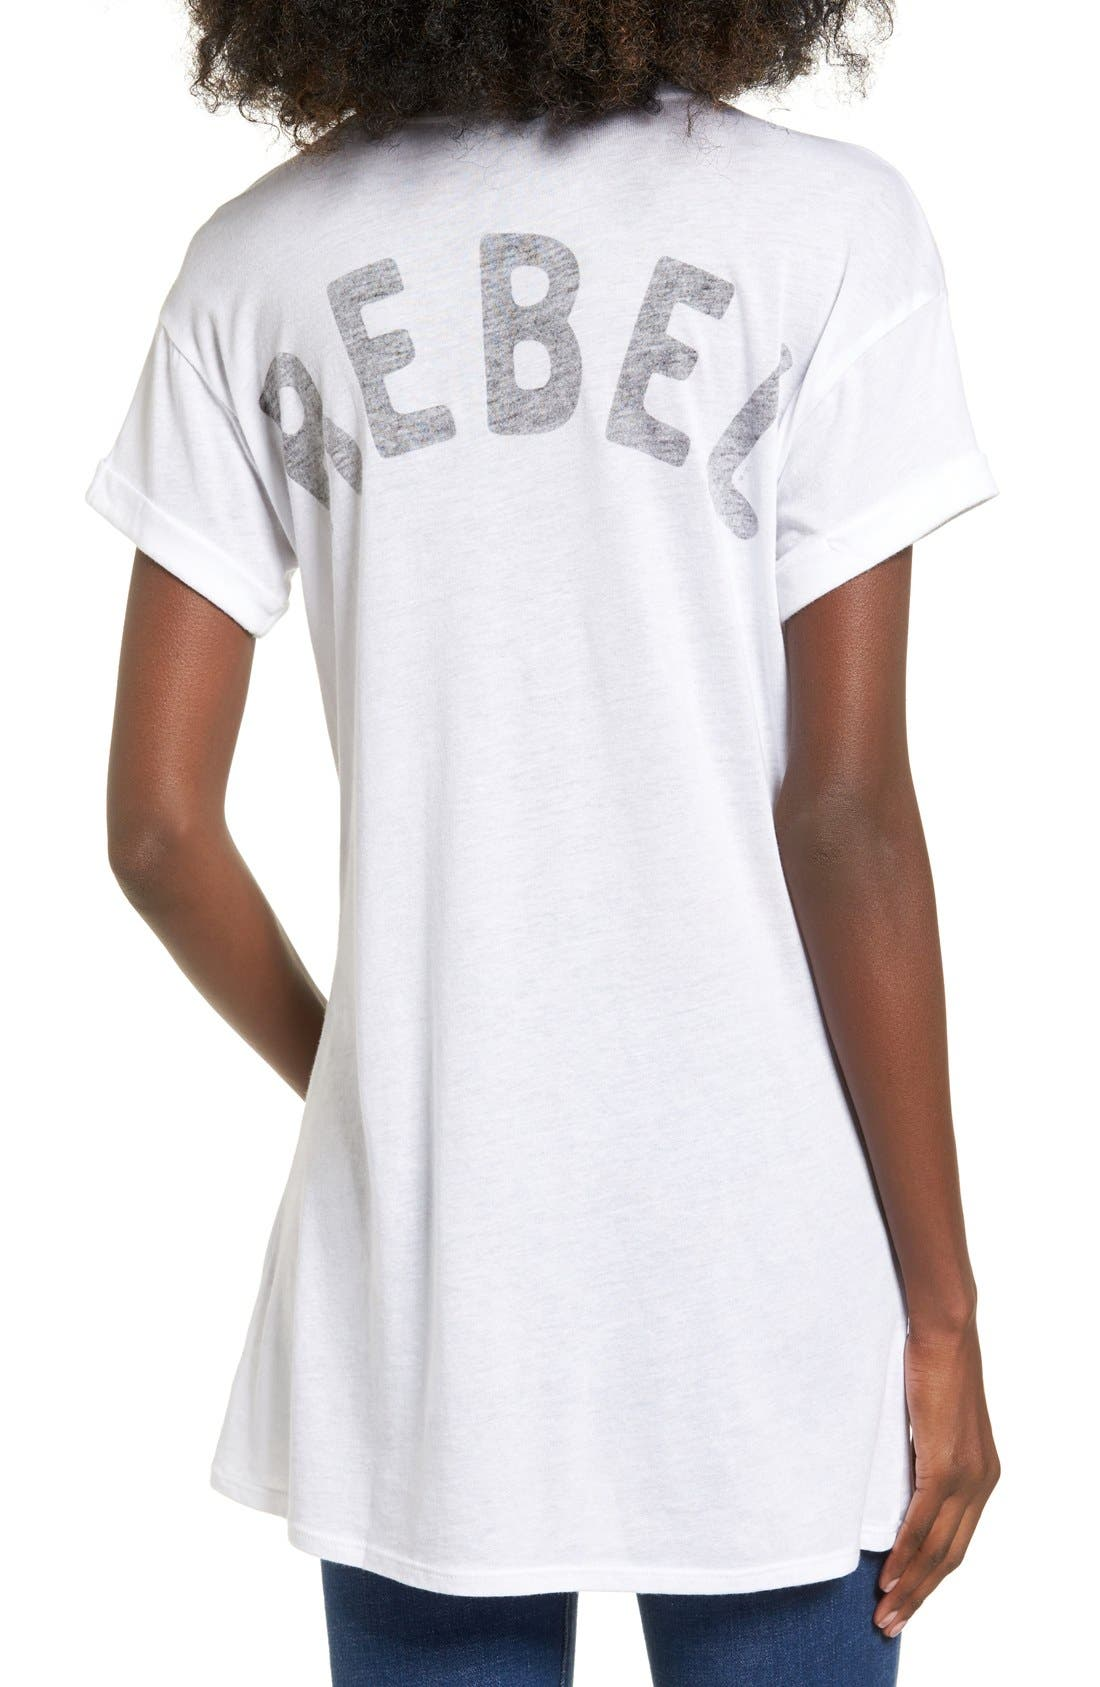 Main Image - Michelle by Comune Petersburg Rebel Graphic Tee